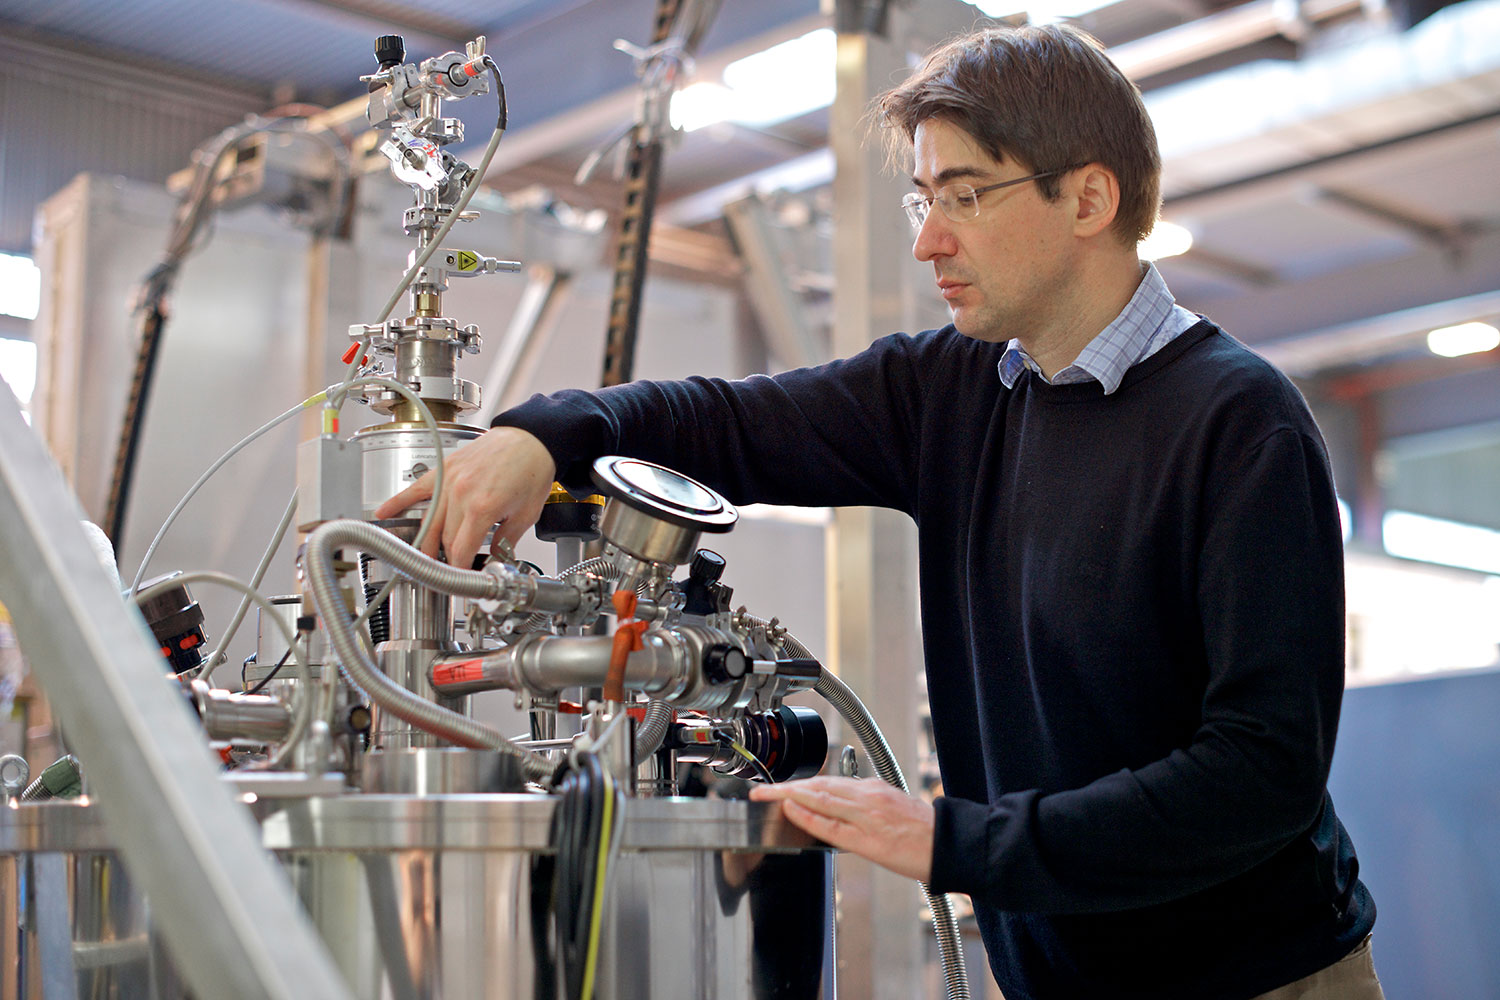 Michel Kenzelmann adjusts the gas input into a high-field magnet used for the experiments on CeCoIn<sub>5</sub> at the Spallation Neutron Source SINQ. (Photo: Paul Scherrer Institute/Markus Fischer)